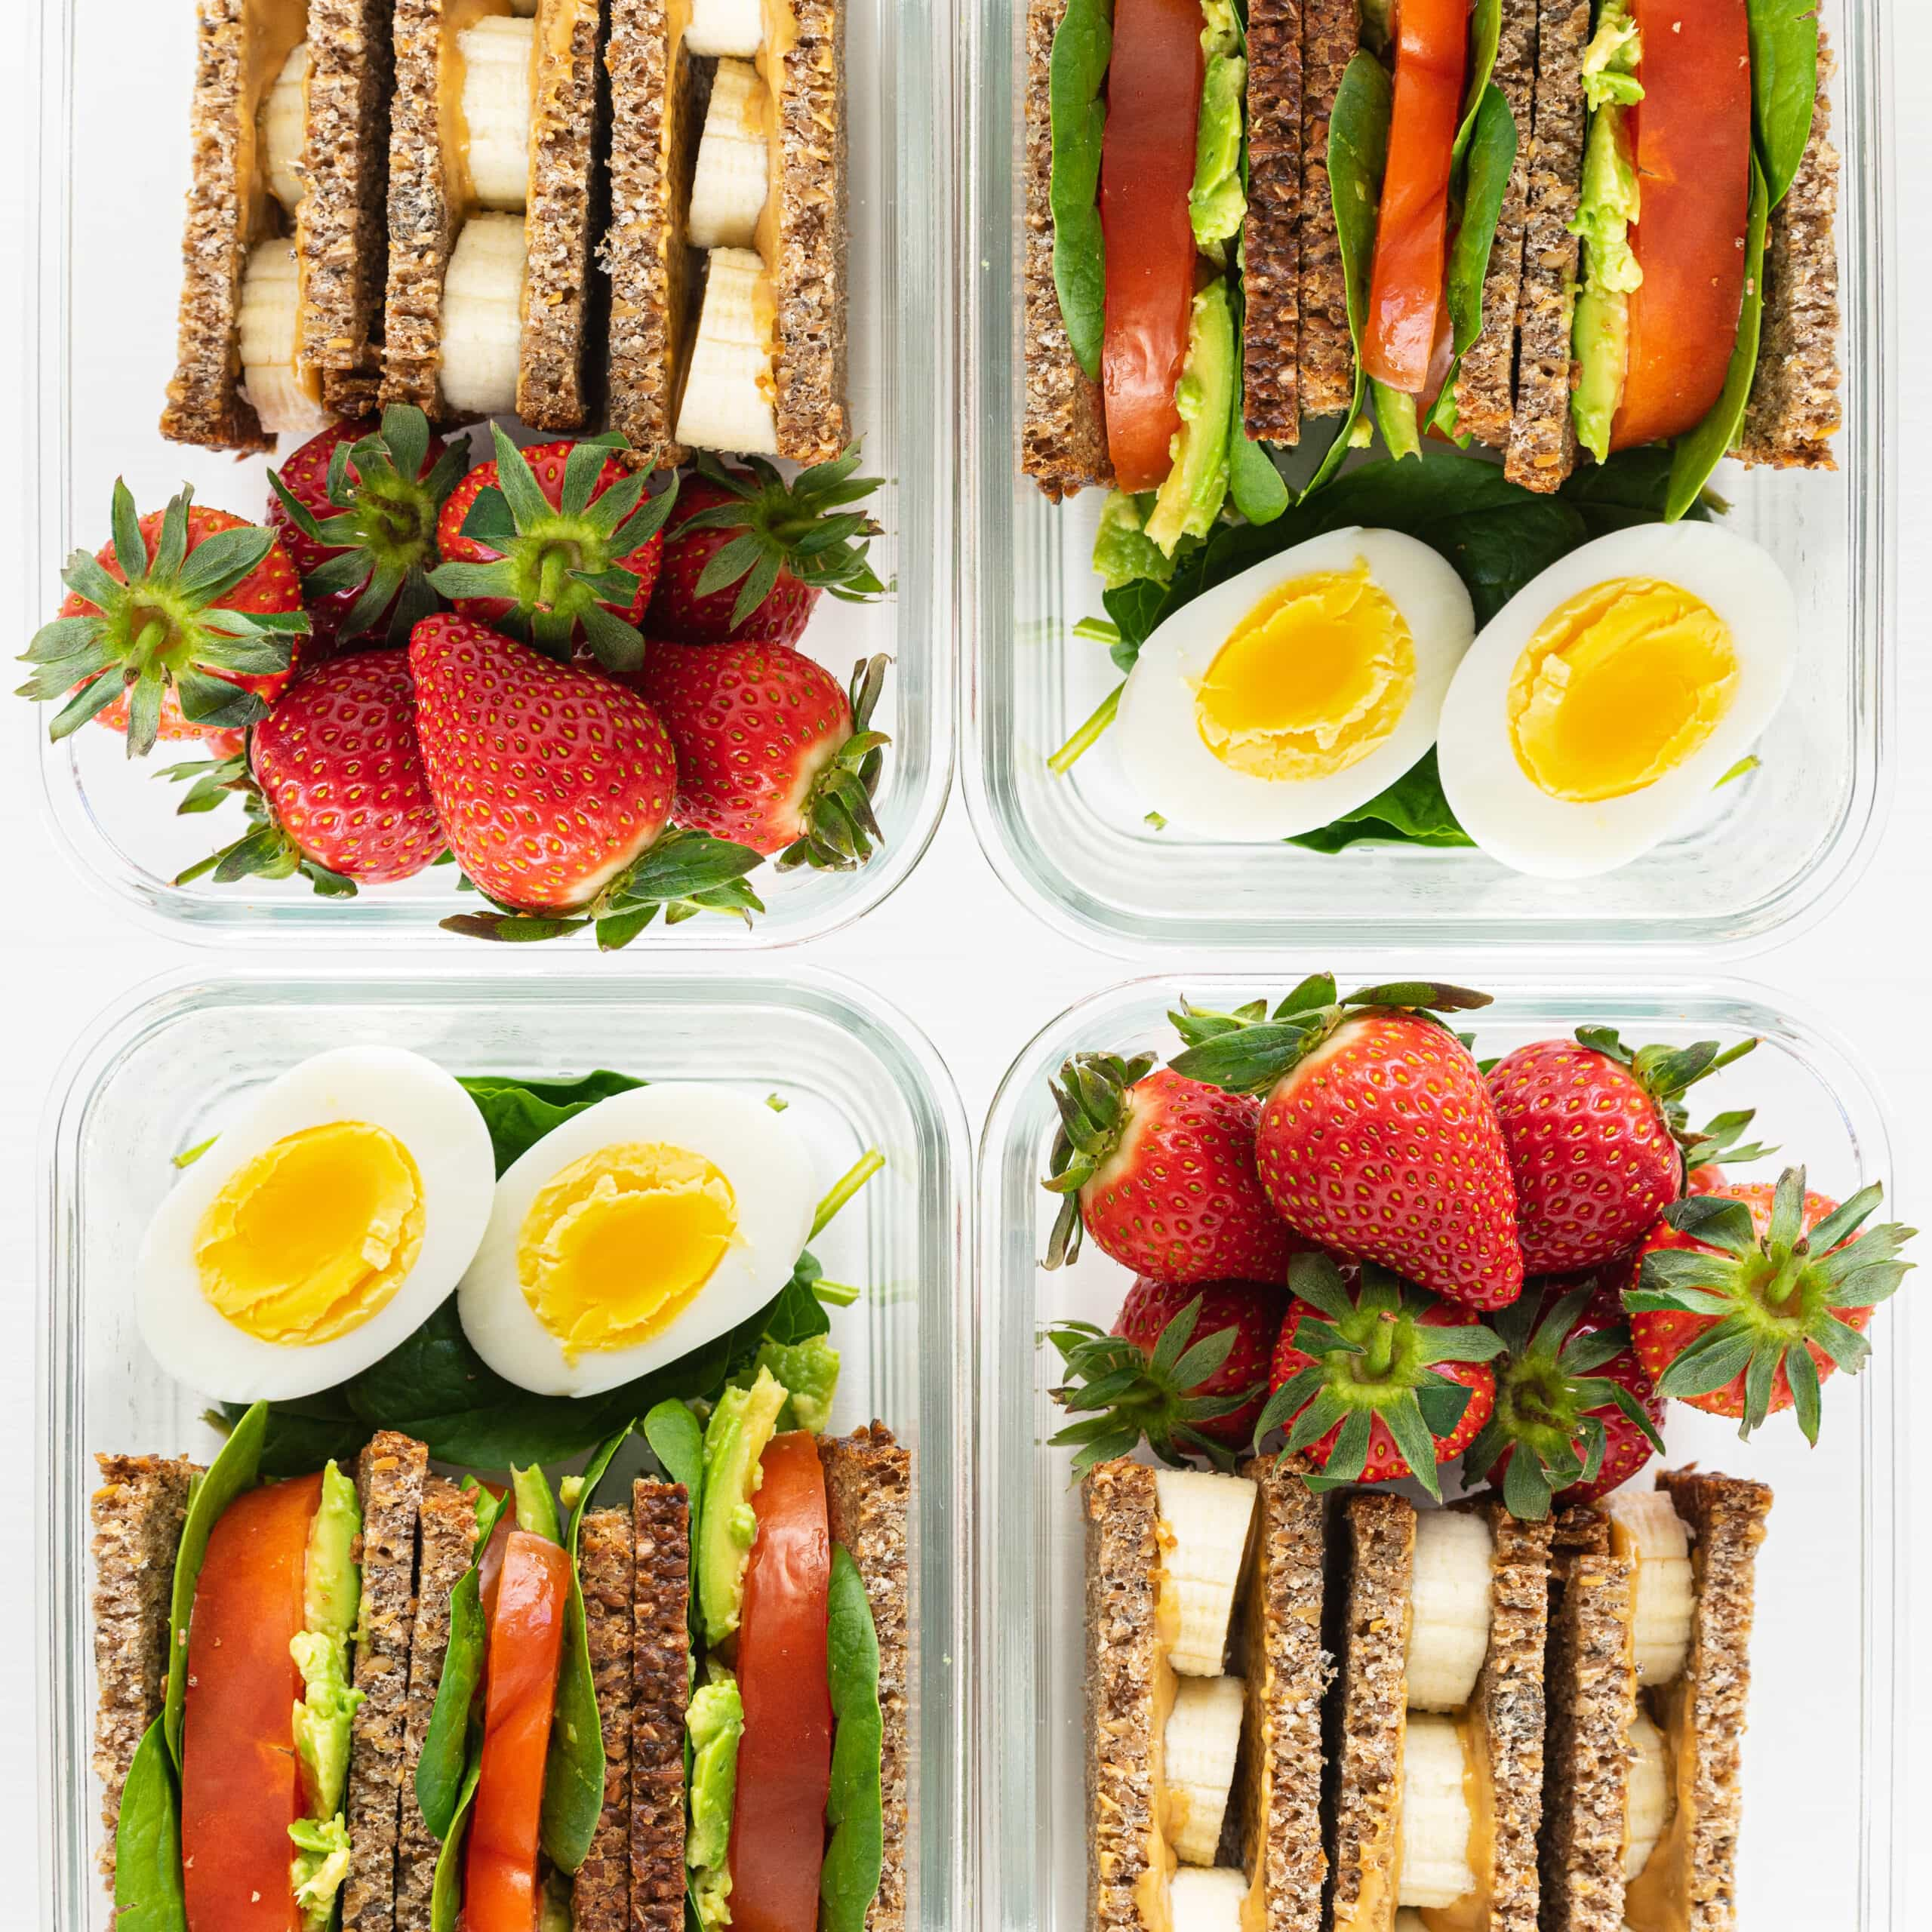 25 Healthy Breakfast Meal Prep Ideas For Busy Mornings